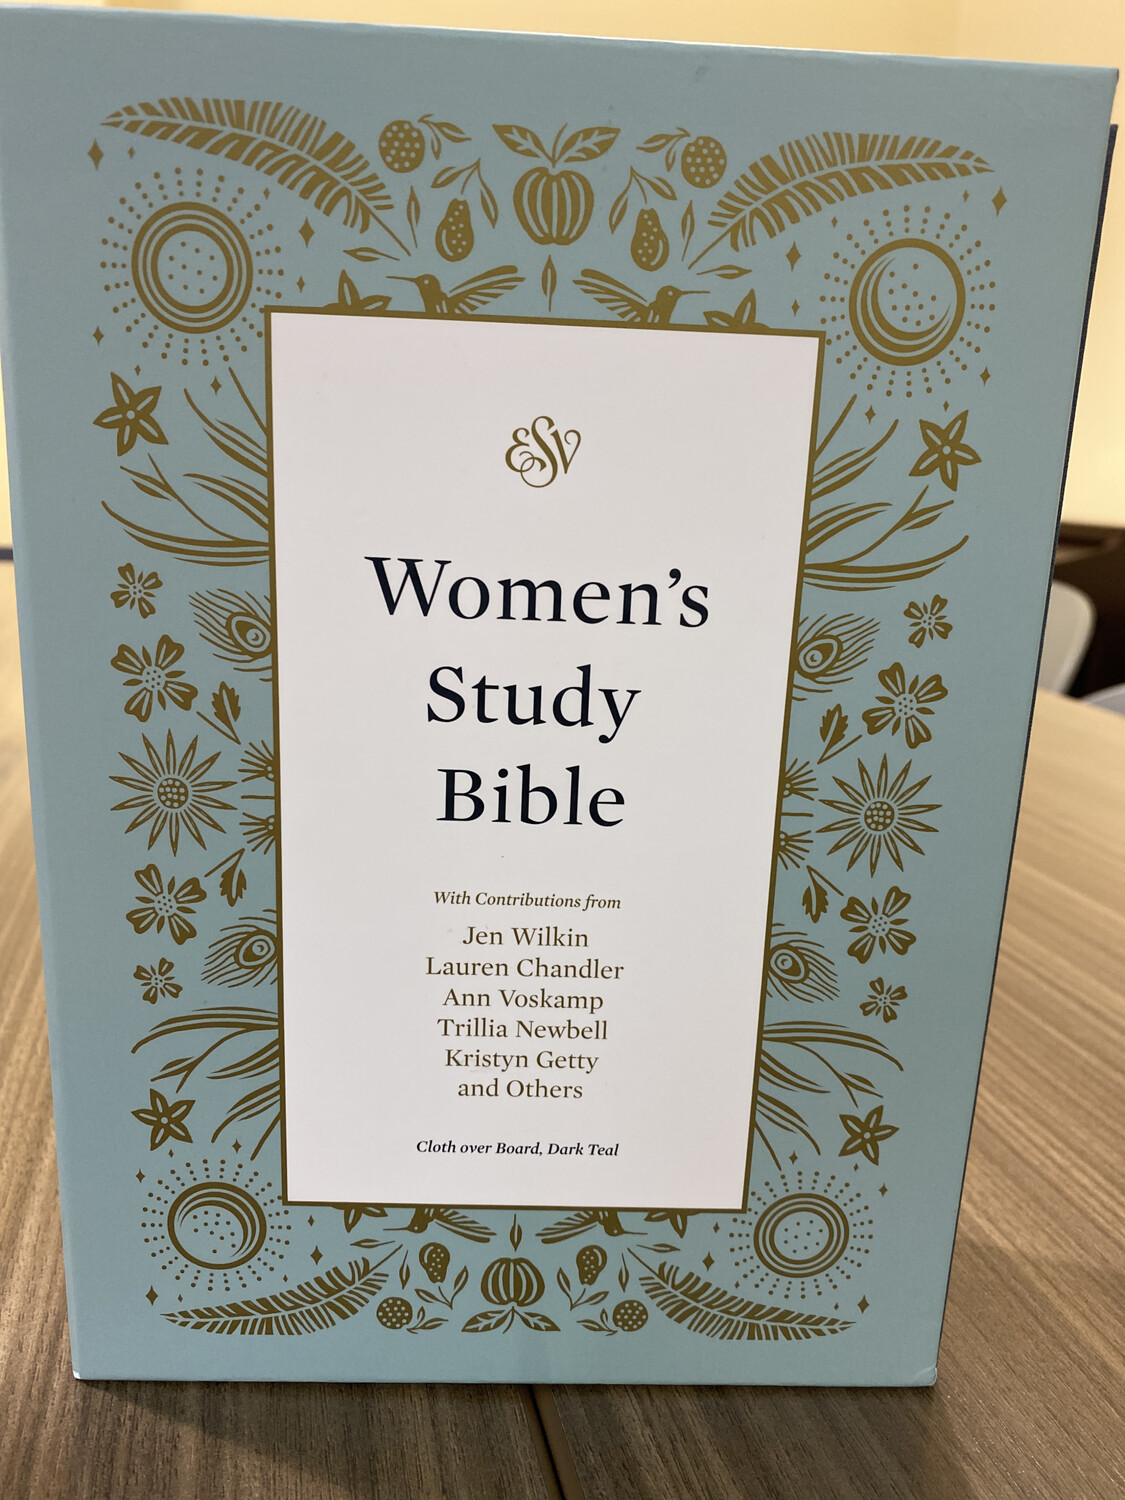 ESV, Women's Study Bible, Cloth Over Board, Dark Teal